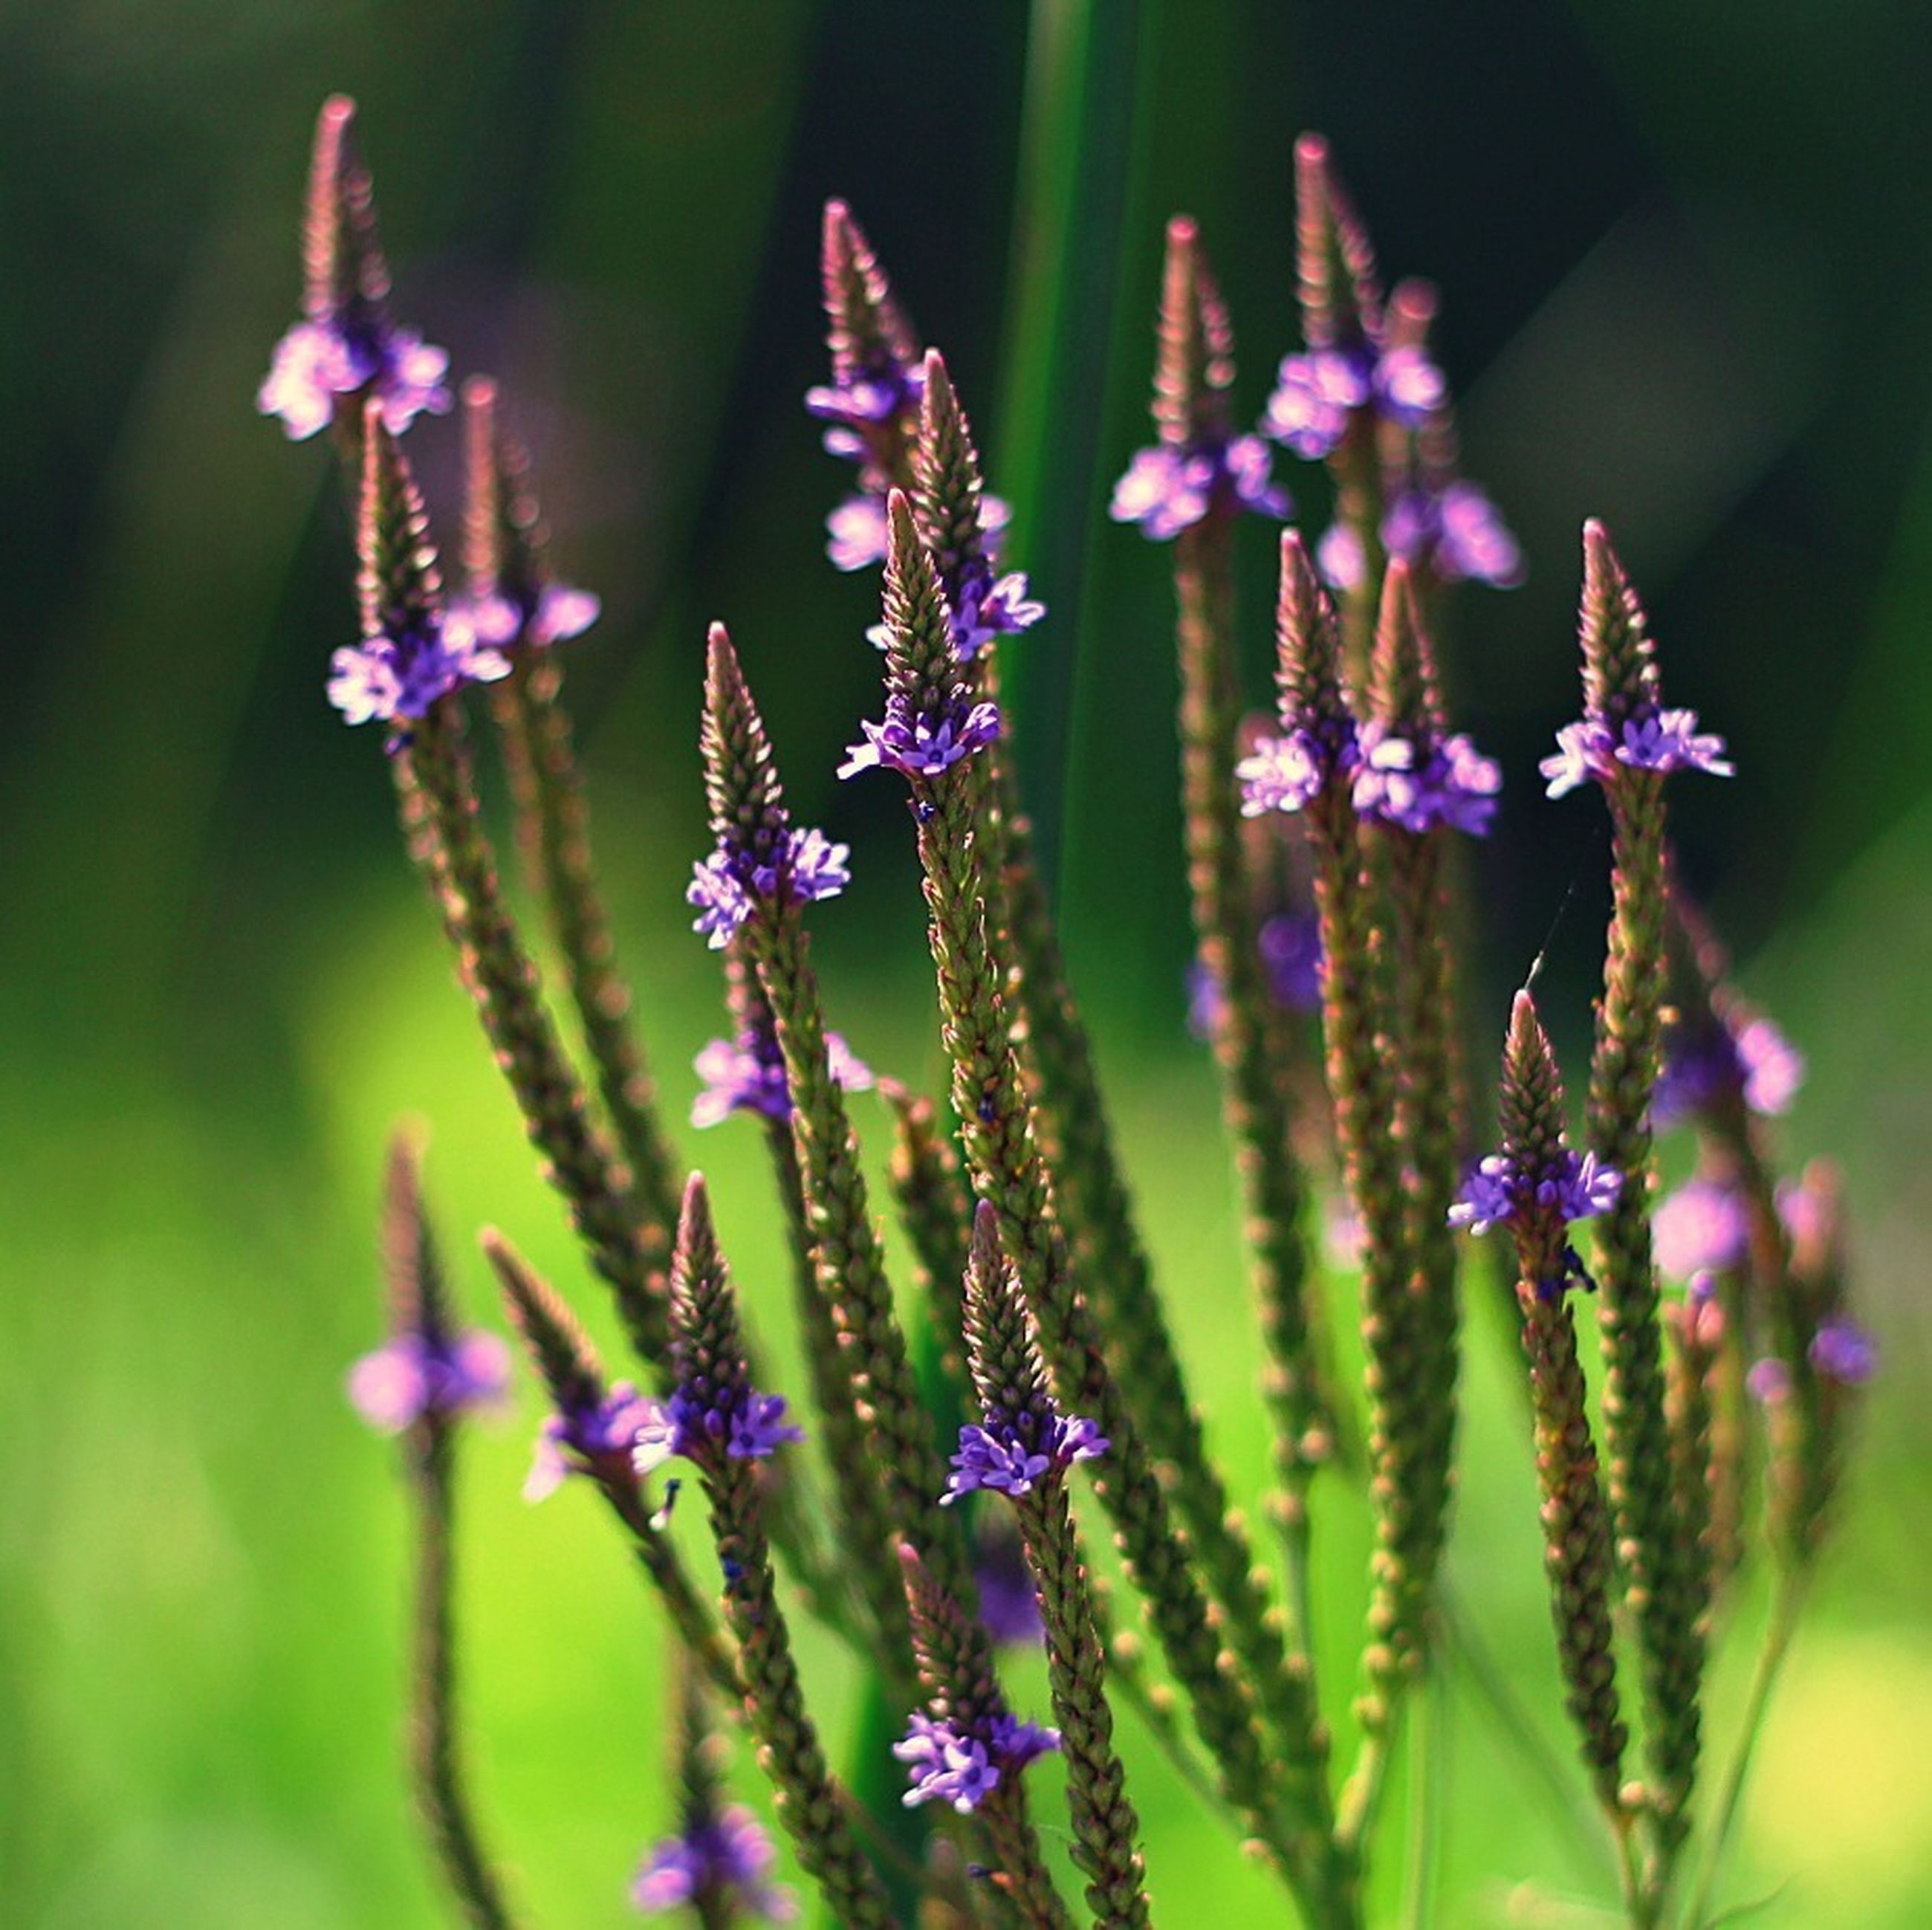 flower, purple, freshness, growth, fragility, focus on foreground, beauty in nature, close-up, plant, nature, petal, selective focus, stem, flower head, blooming, field, in bloom, day, wildflower, outdoors